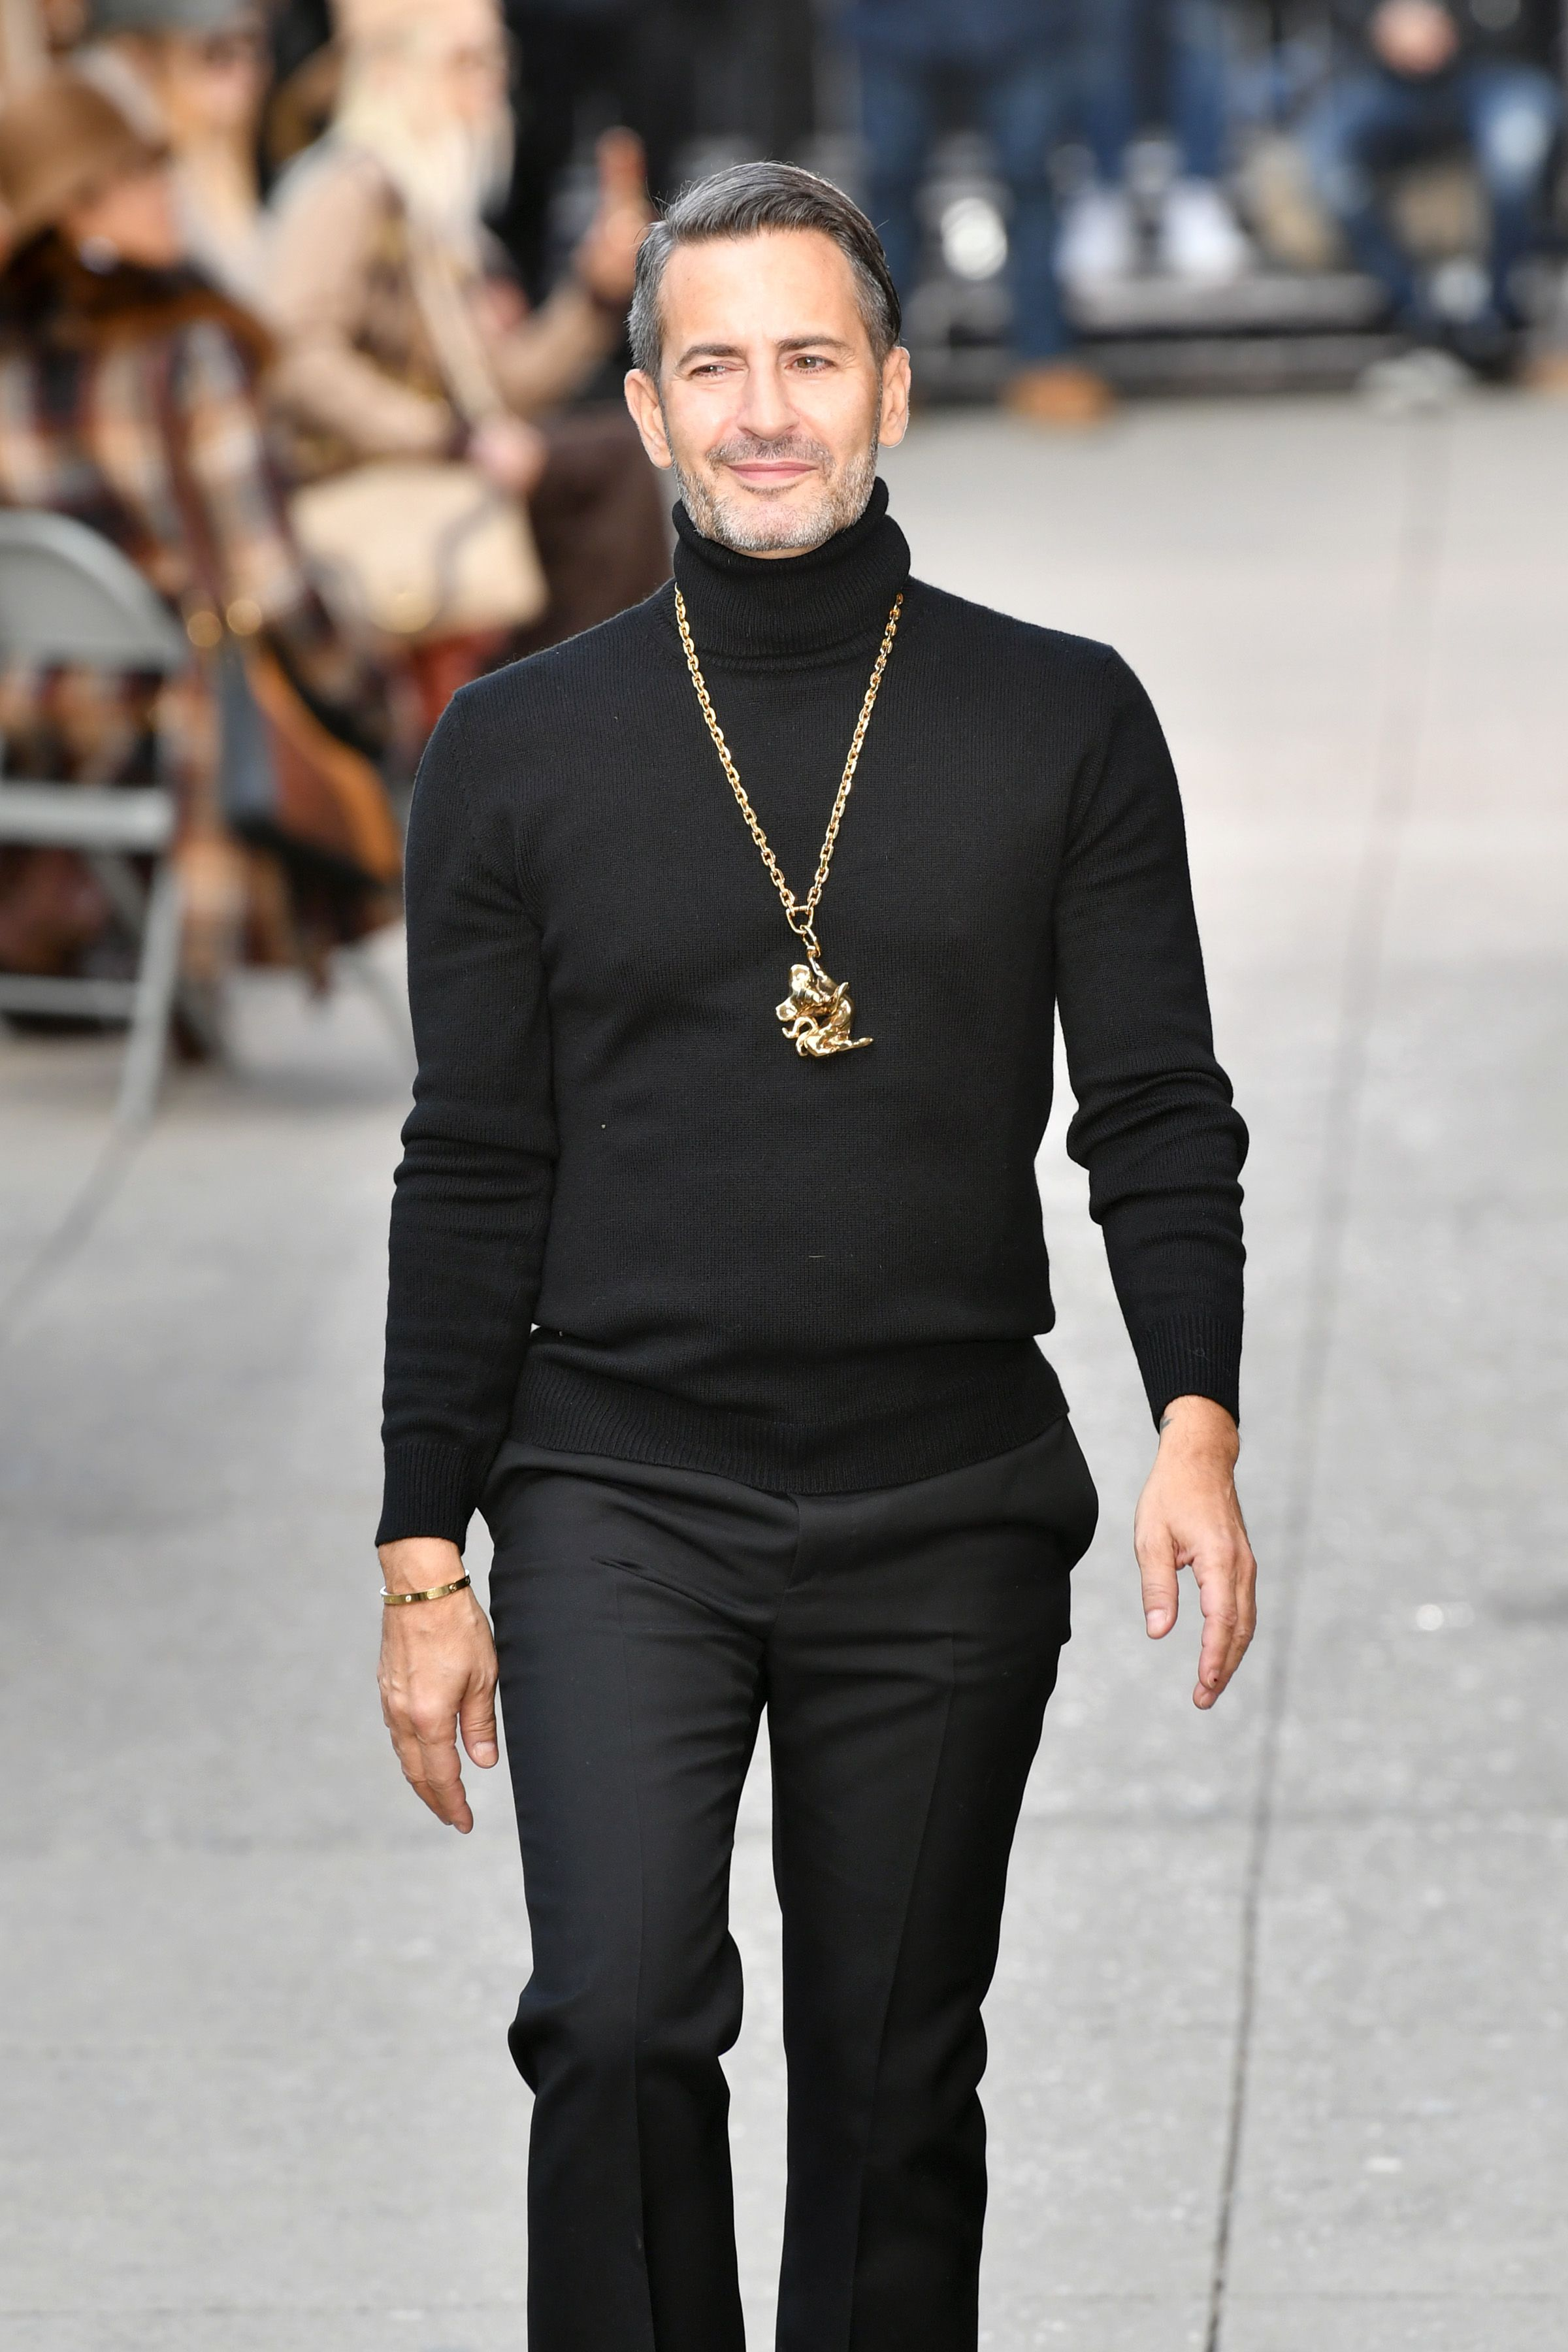 """The Marc Jacobs"""" Will Be Marc Jacobs' New, Affordable Label After the Demise of Marc by Marc Jacobs"""